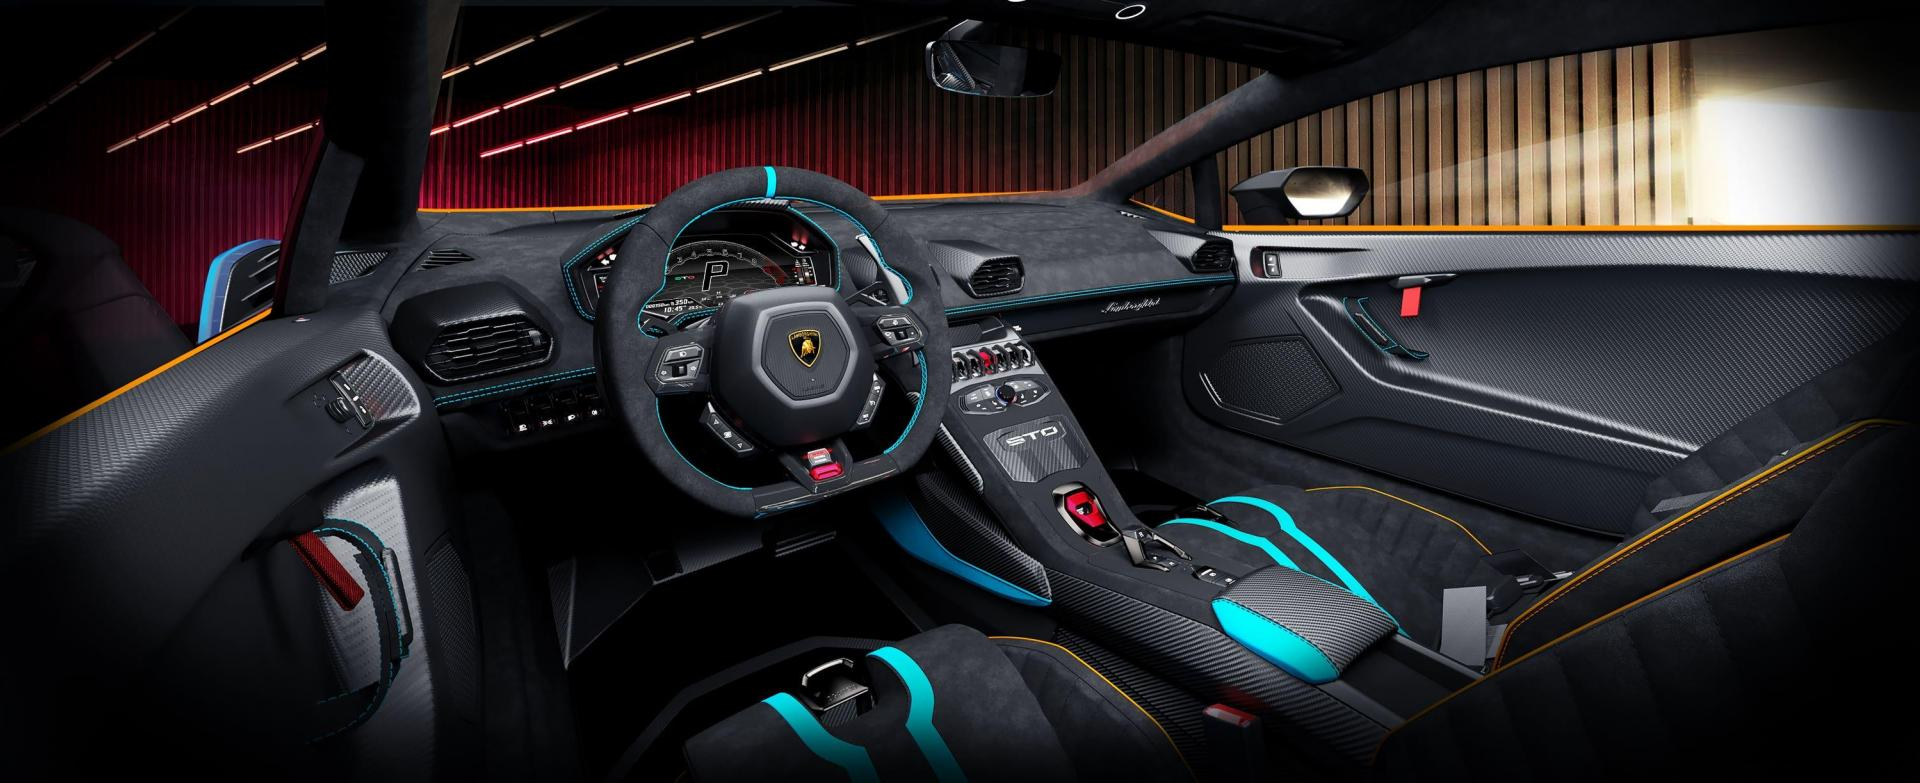 The interior of the Huracan features many lightweight materials.